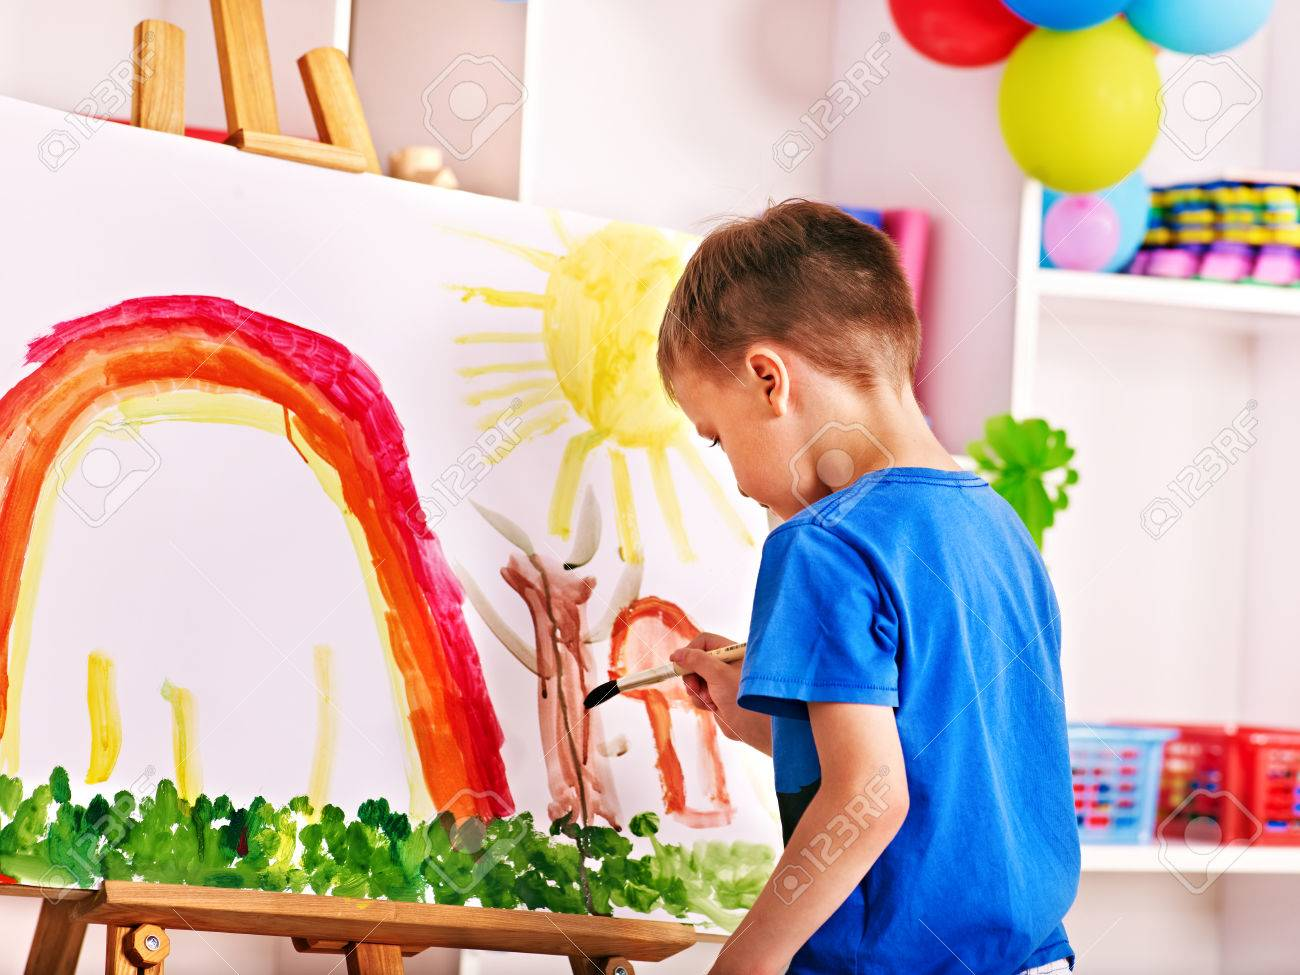 Child painting at easel in school. Education. - 28393911